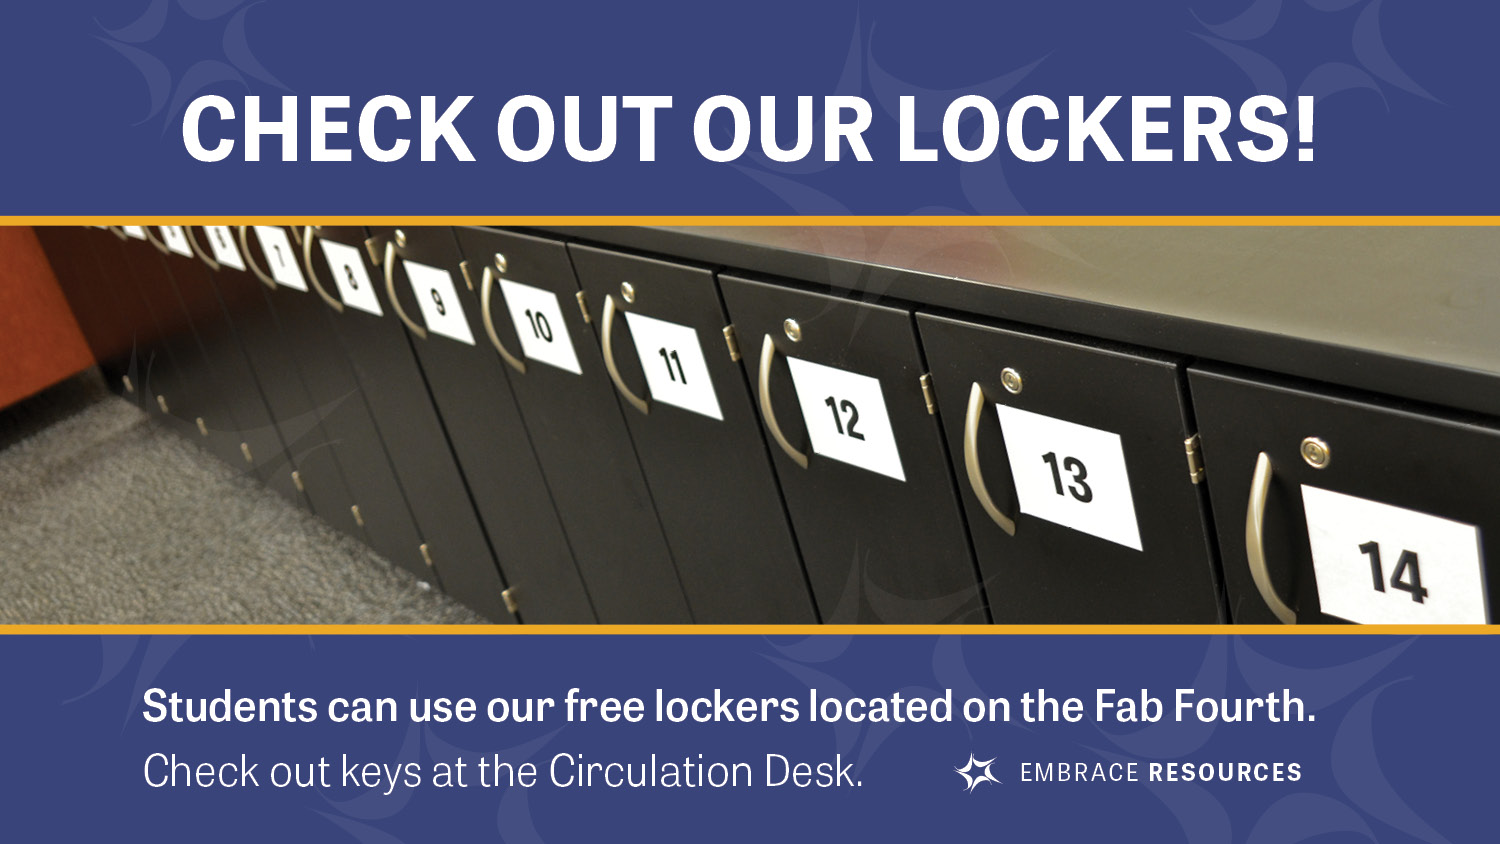 Show more about Free Lockers on the Fab 4th